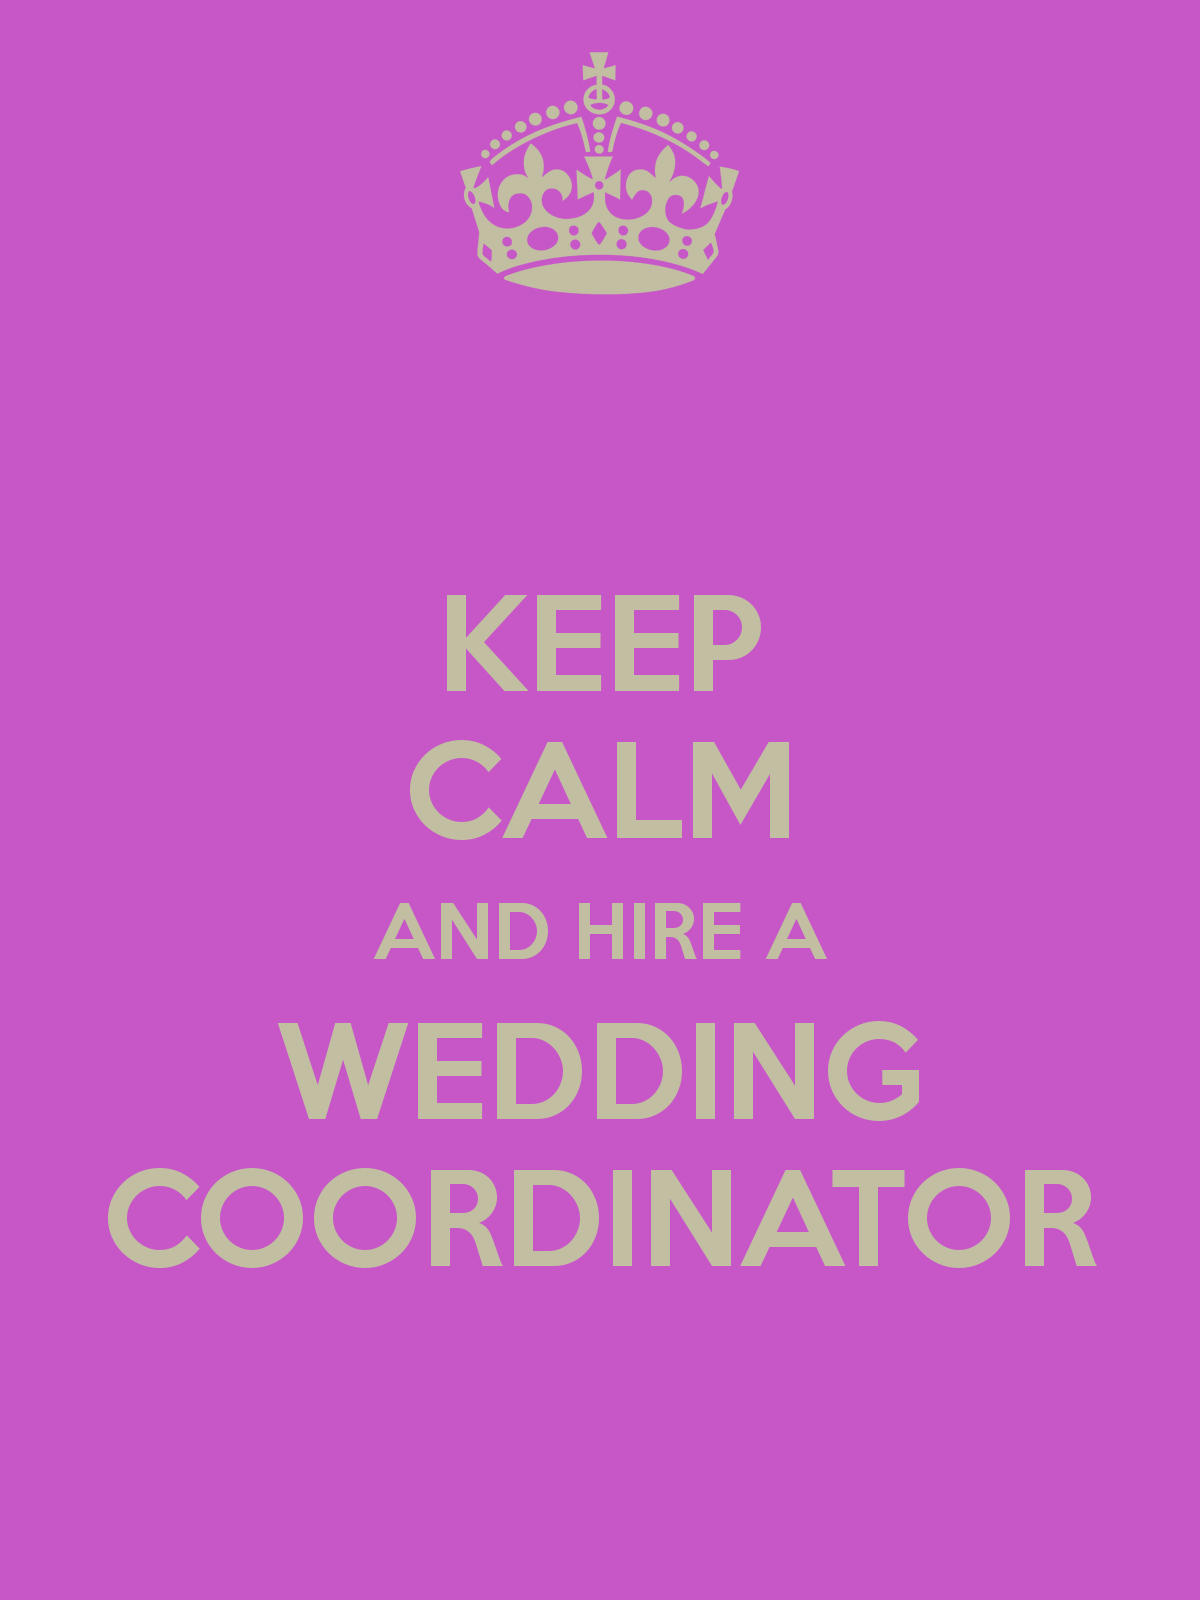 keep-calm-and-hire-a-wedding-coordinator